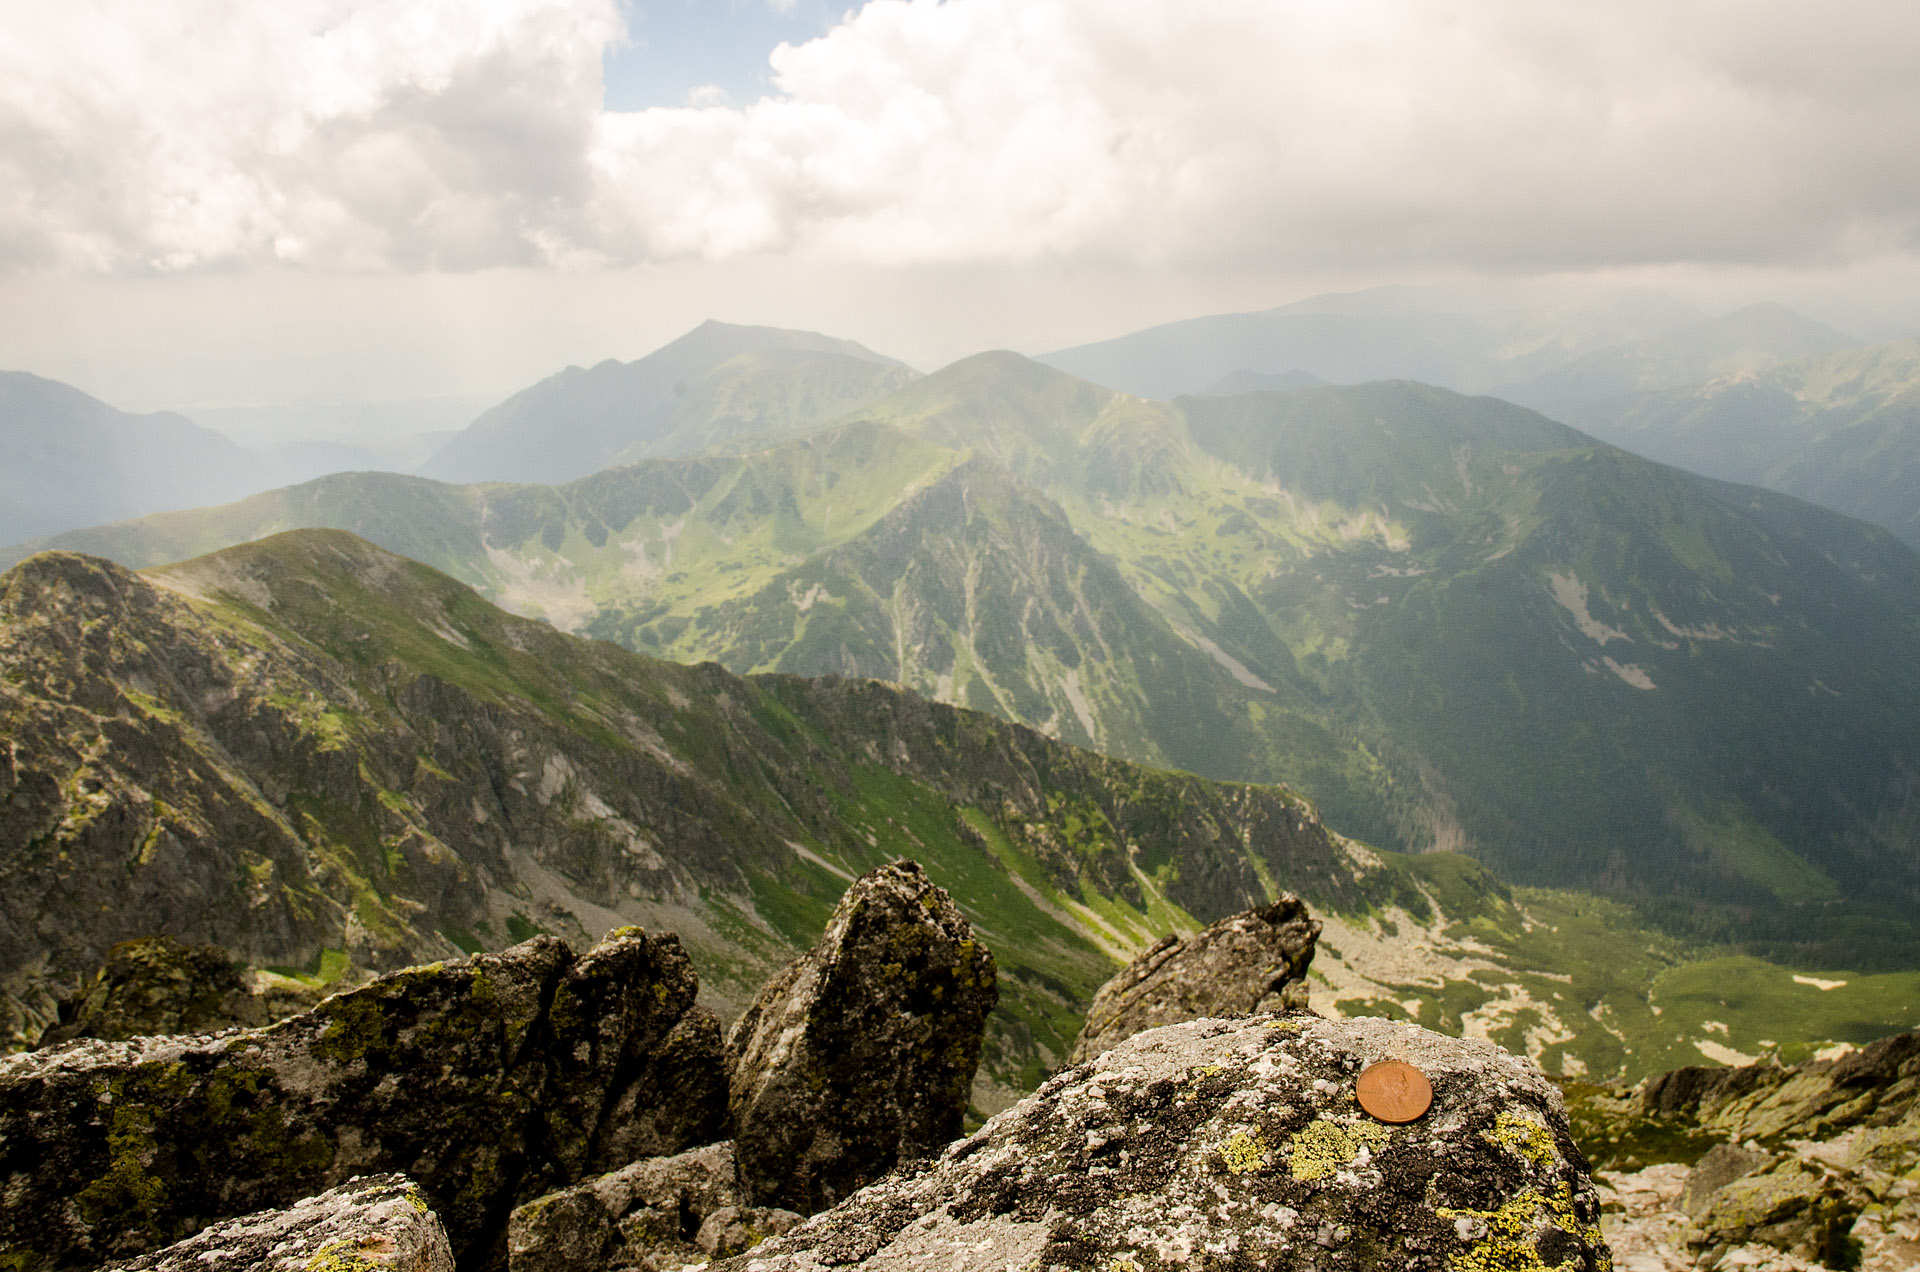 Swinica summit, Tatra National Park, Poland